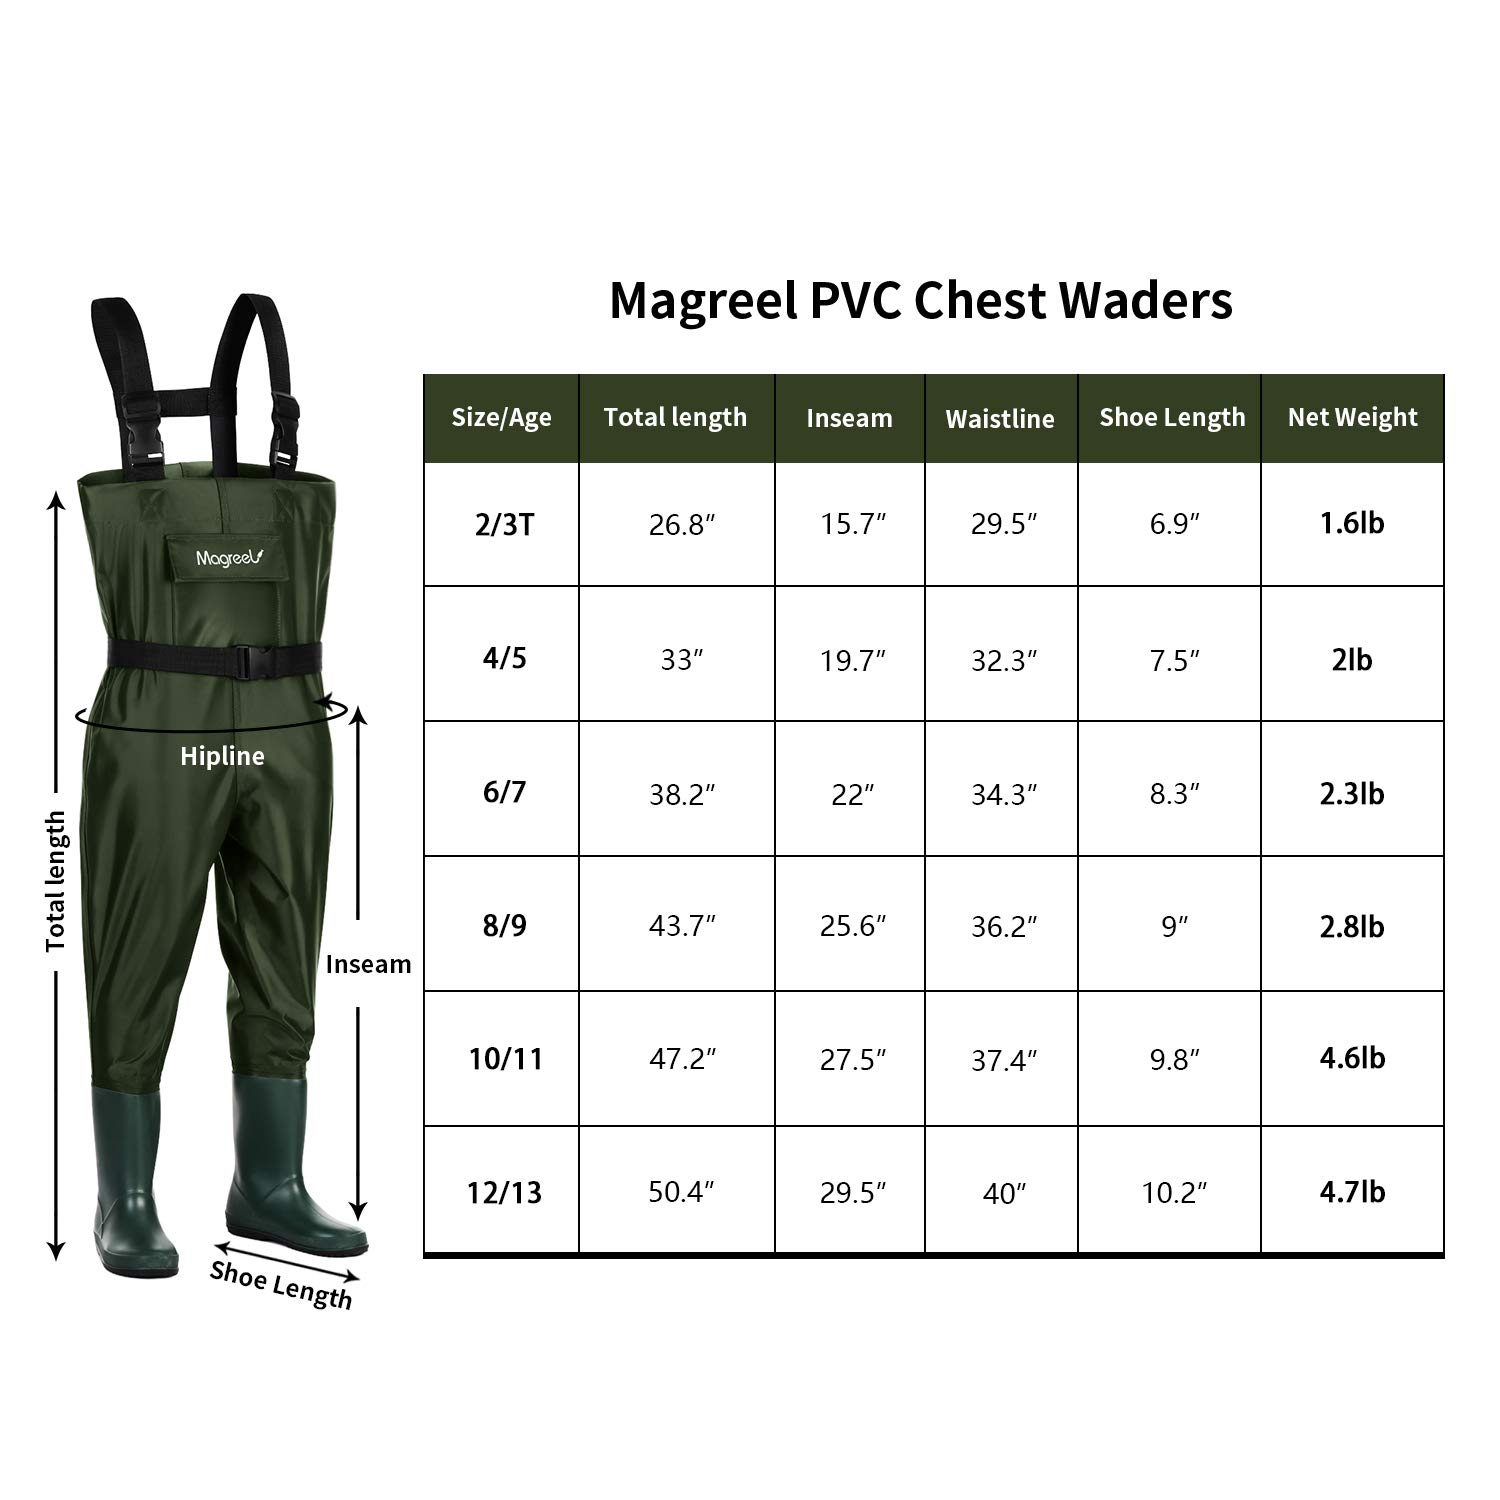 Magreel Kids Chest Waders Waterproof Nylon PVC Youth Waders with Boots Fishing Hunting Waders for Toddler Children, Boys Girls, Army Green, Age 2-13